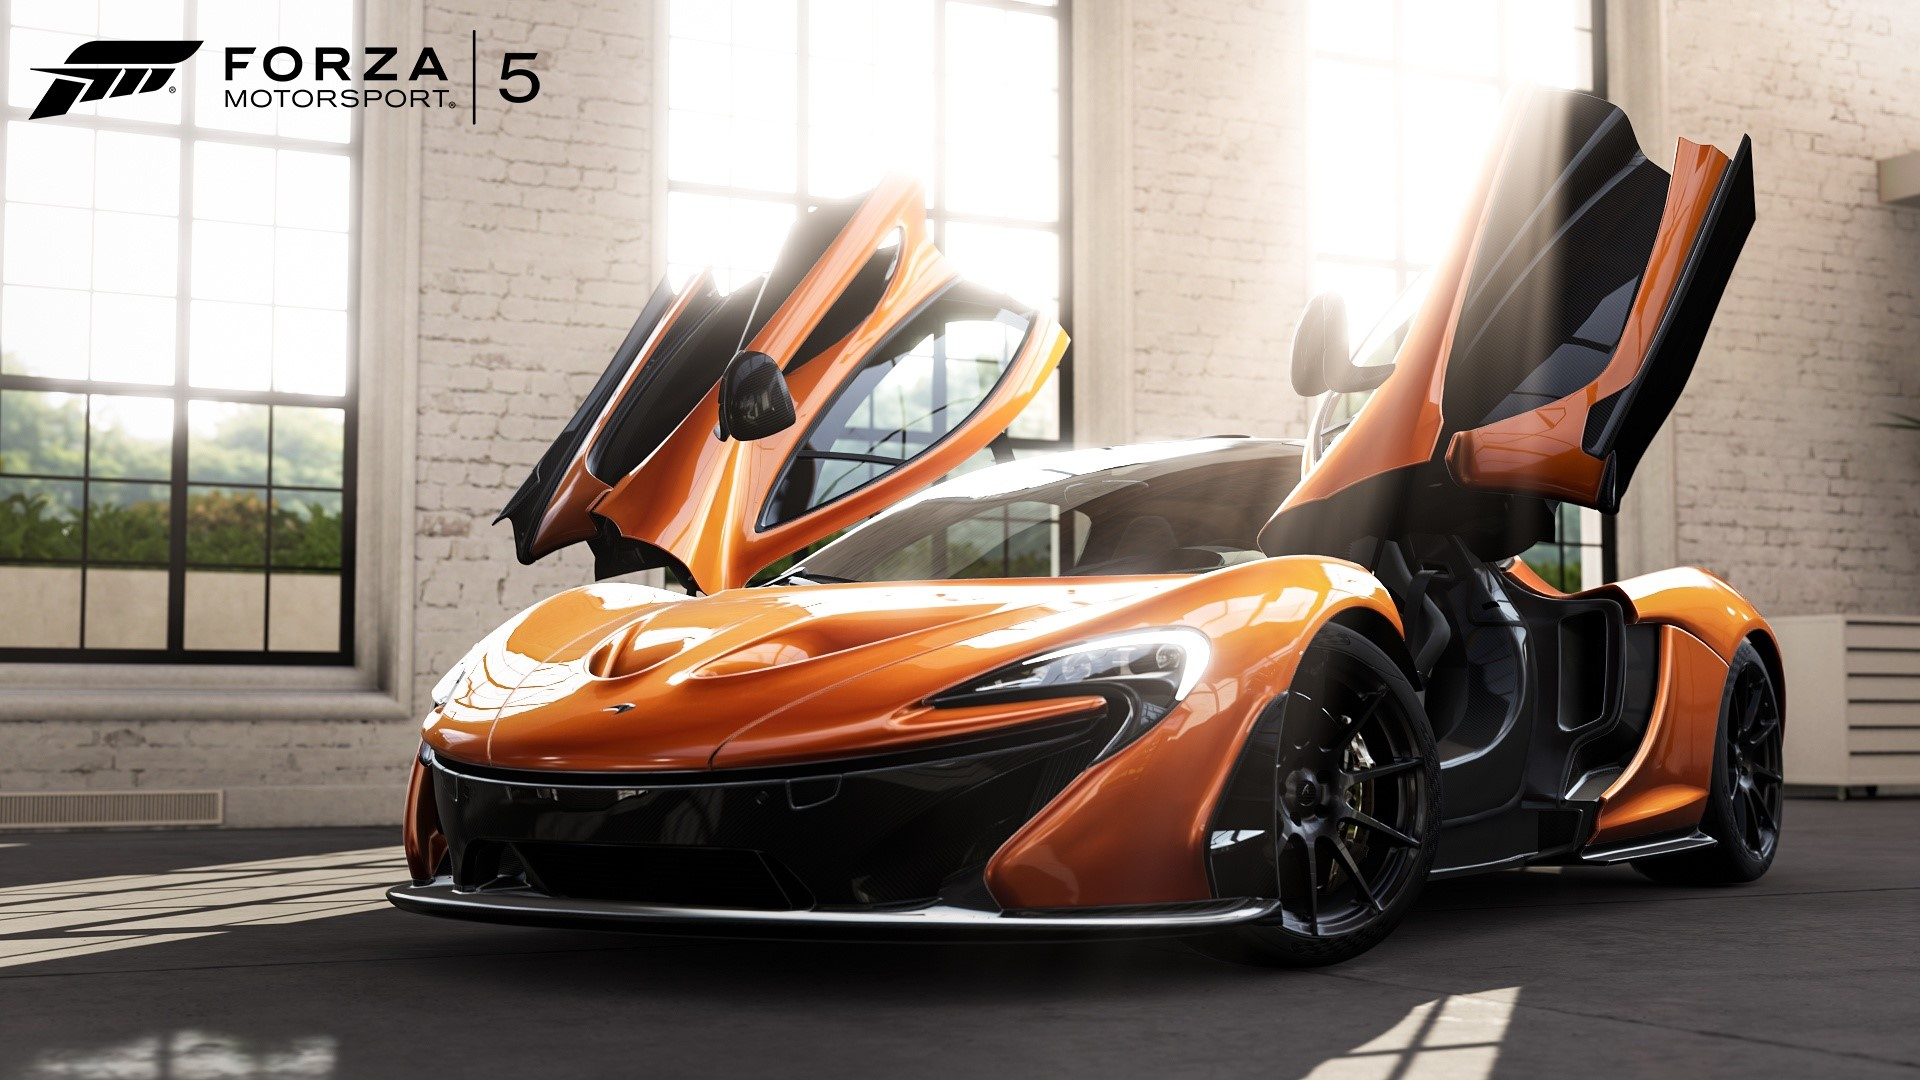 Wallpaper Froza 5 Mclaren P1 Images